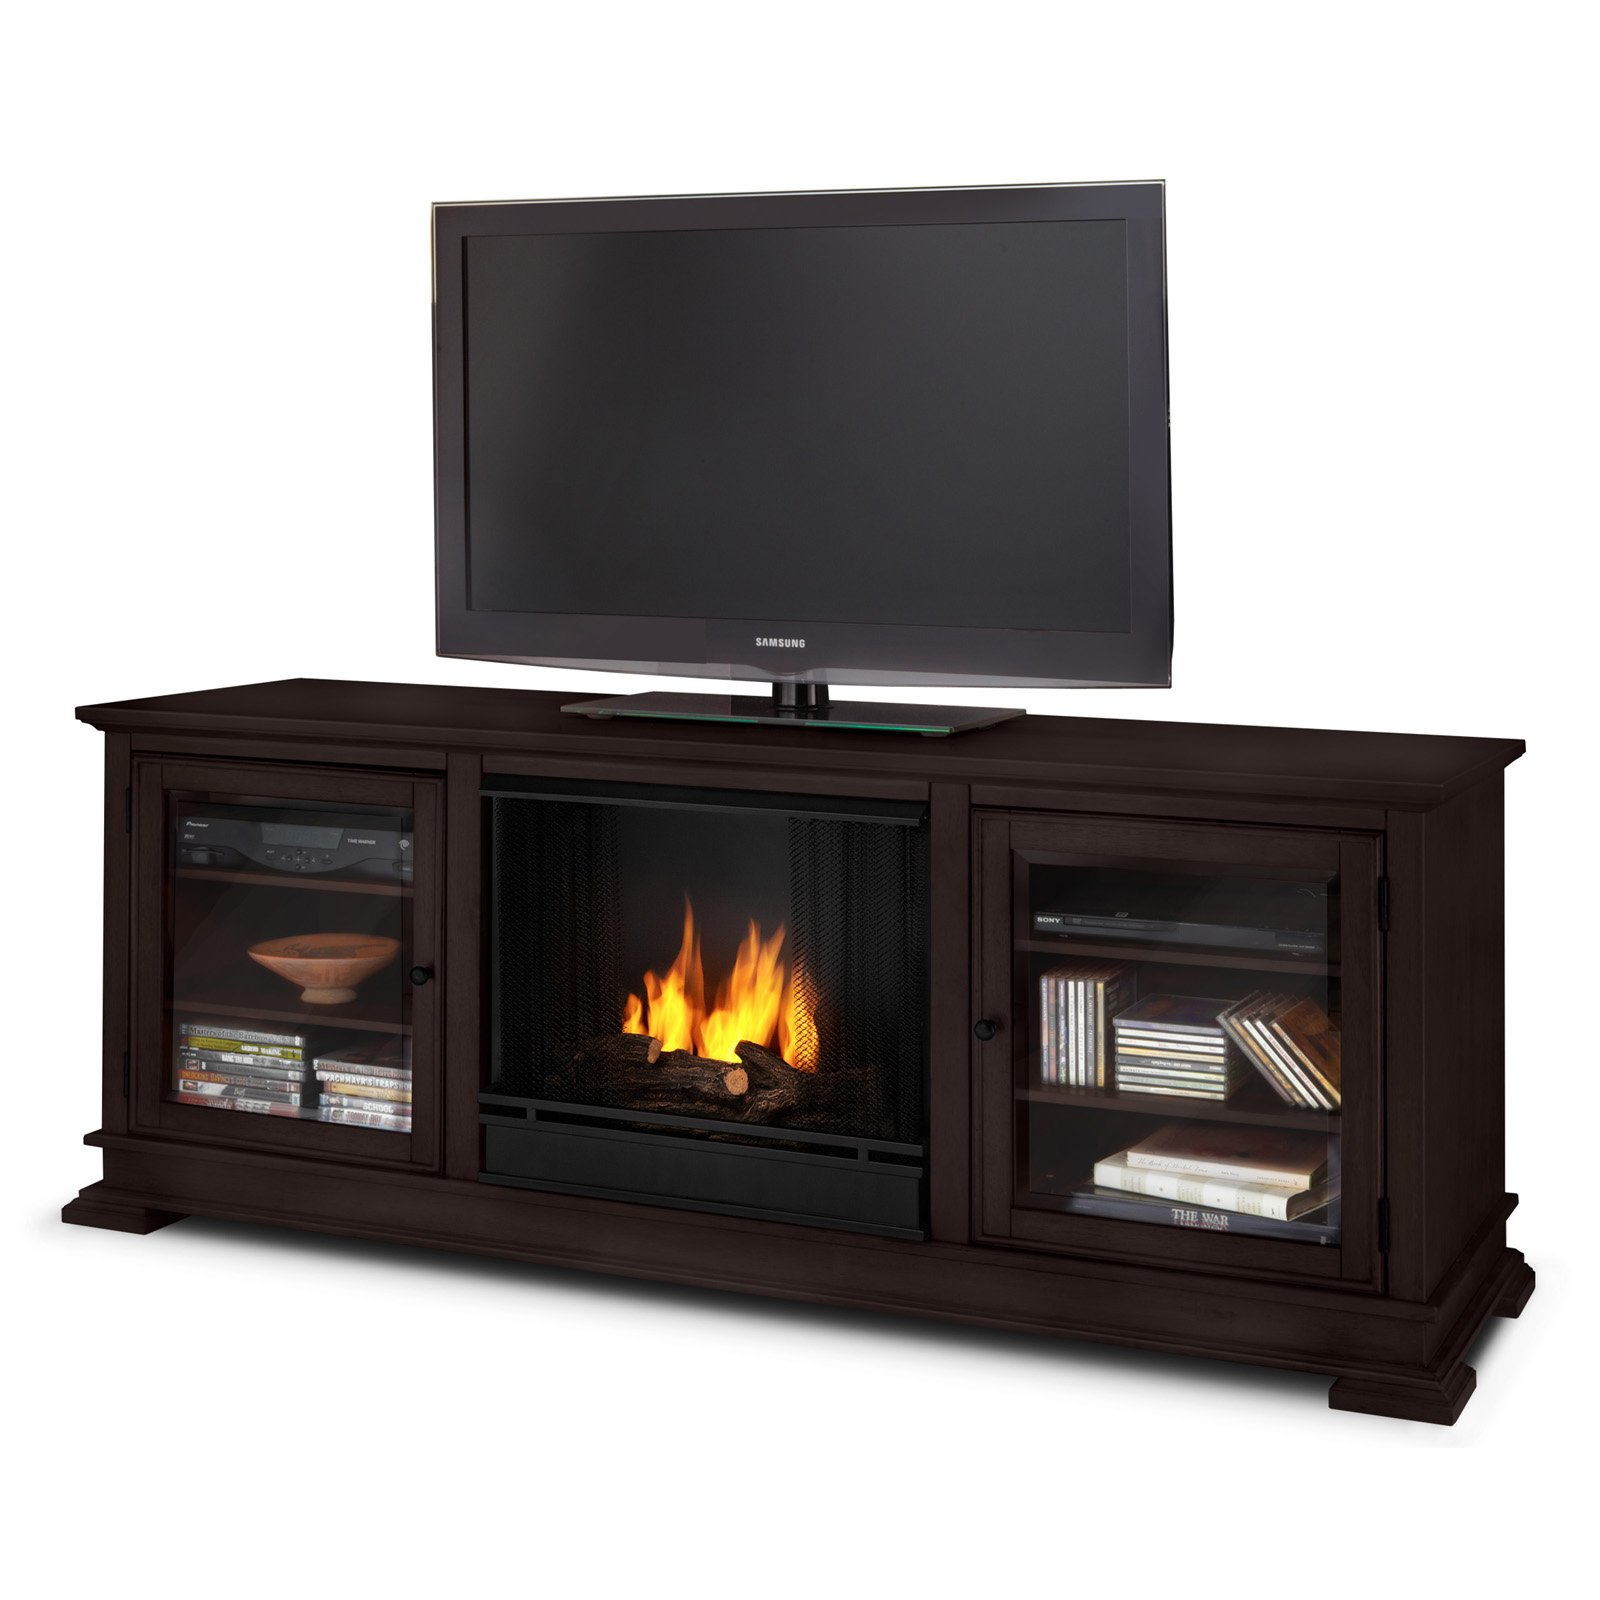 Hudson Gel Fireplace in Espresso